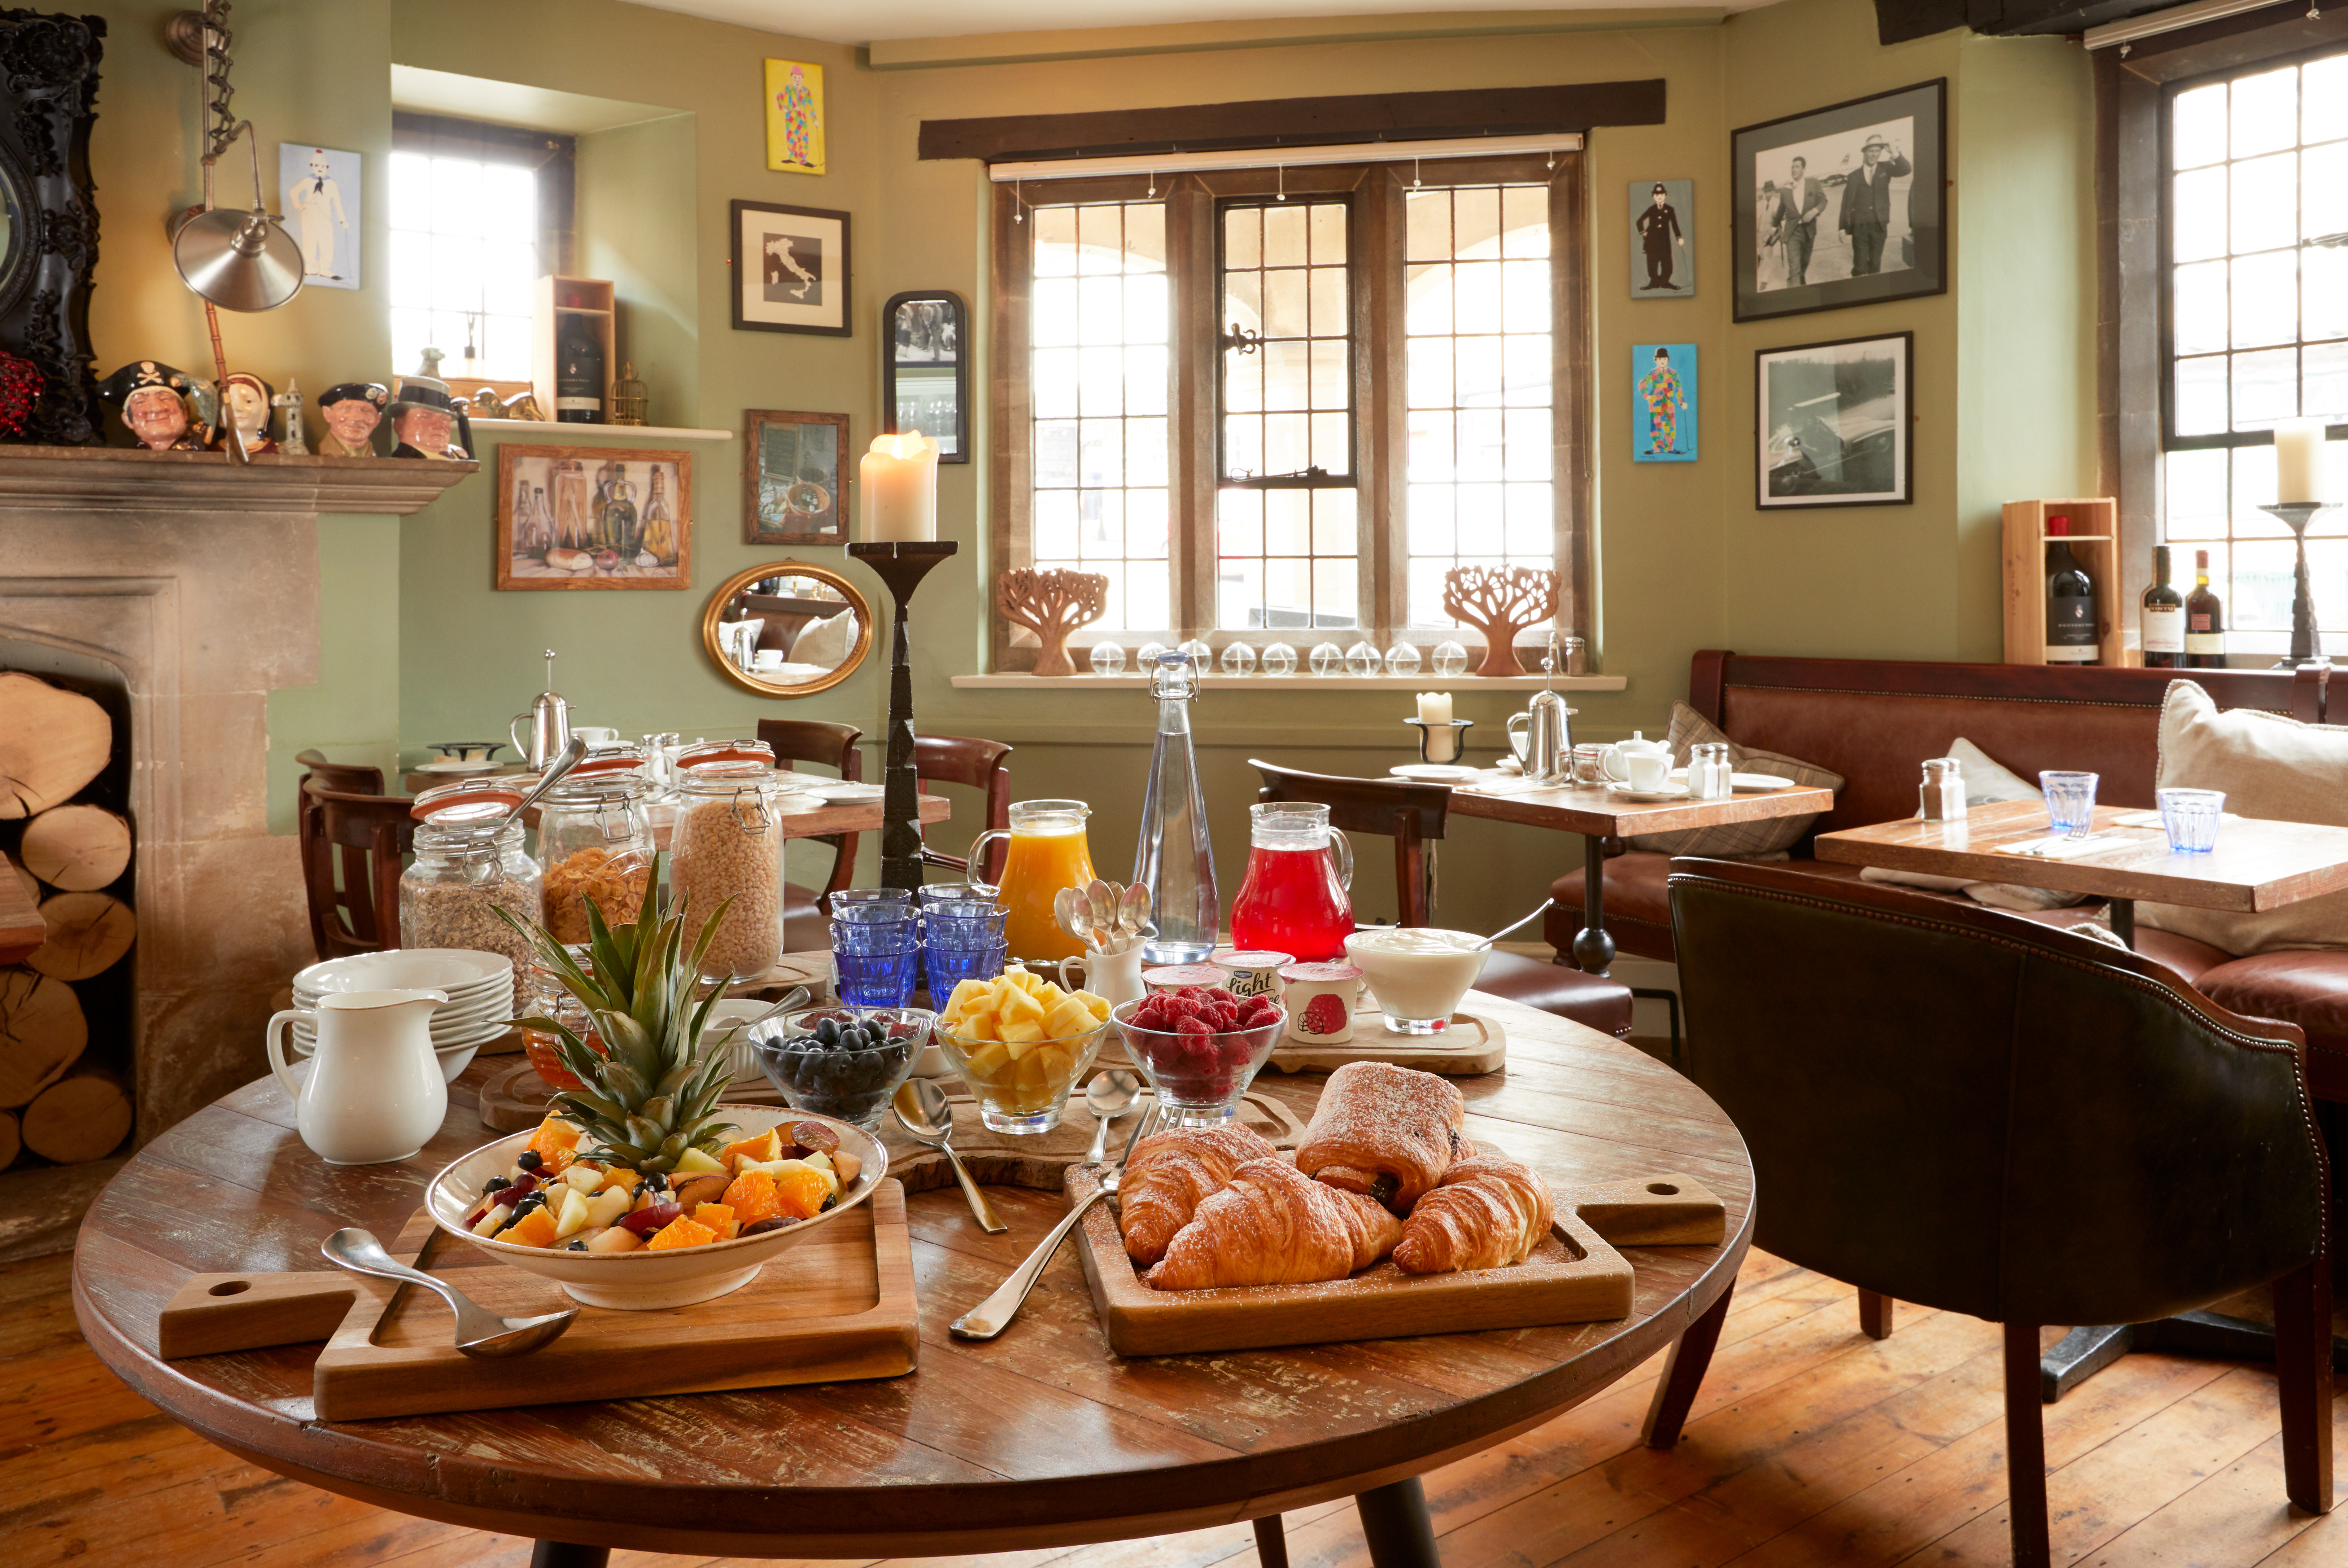 Breakfast buffet in the dining room